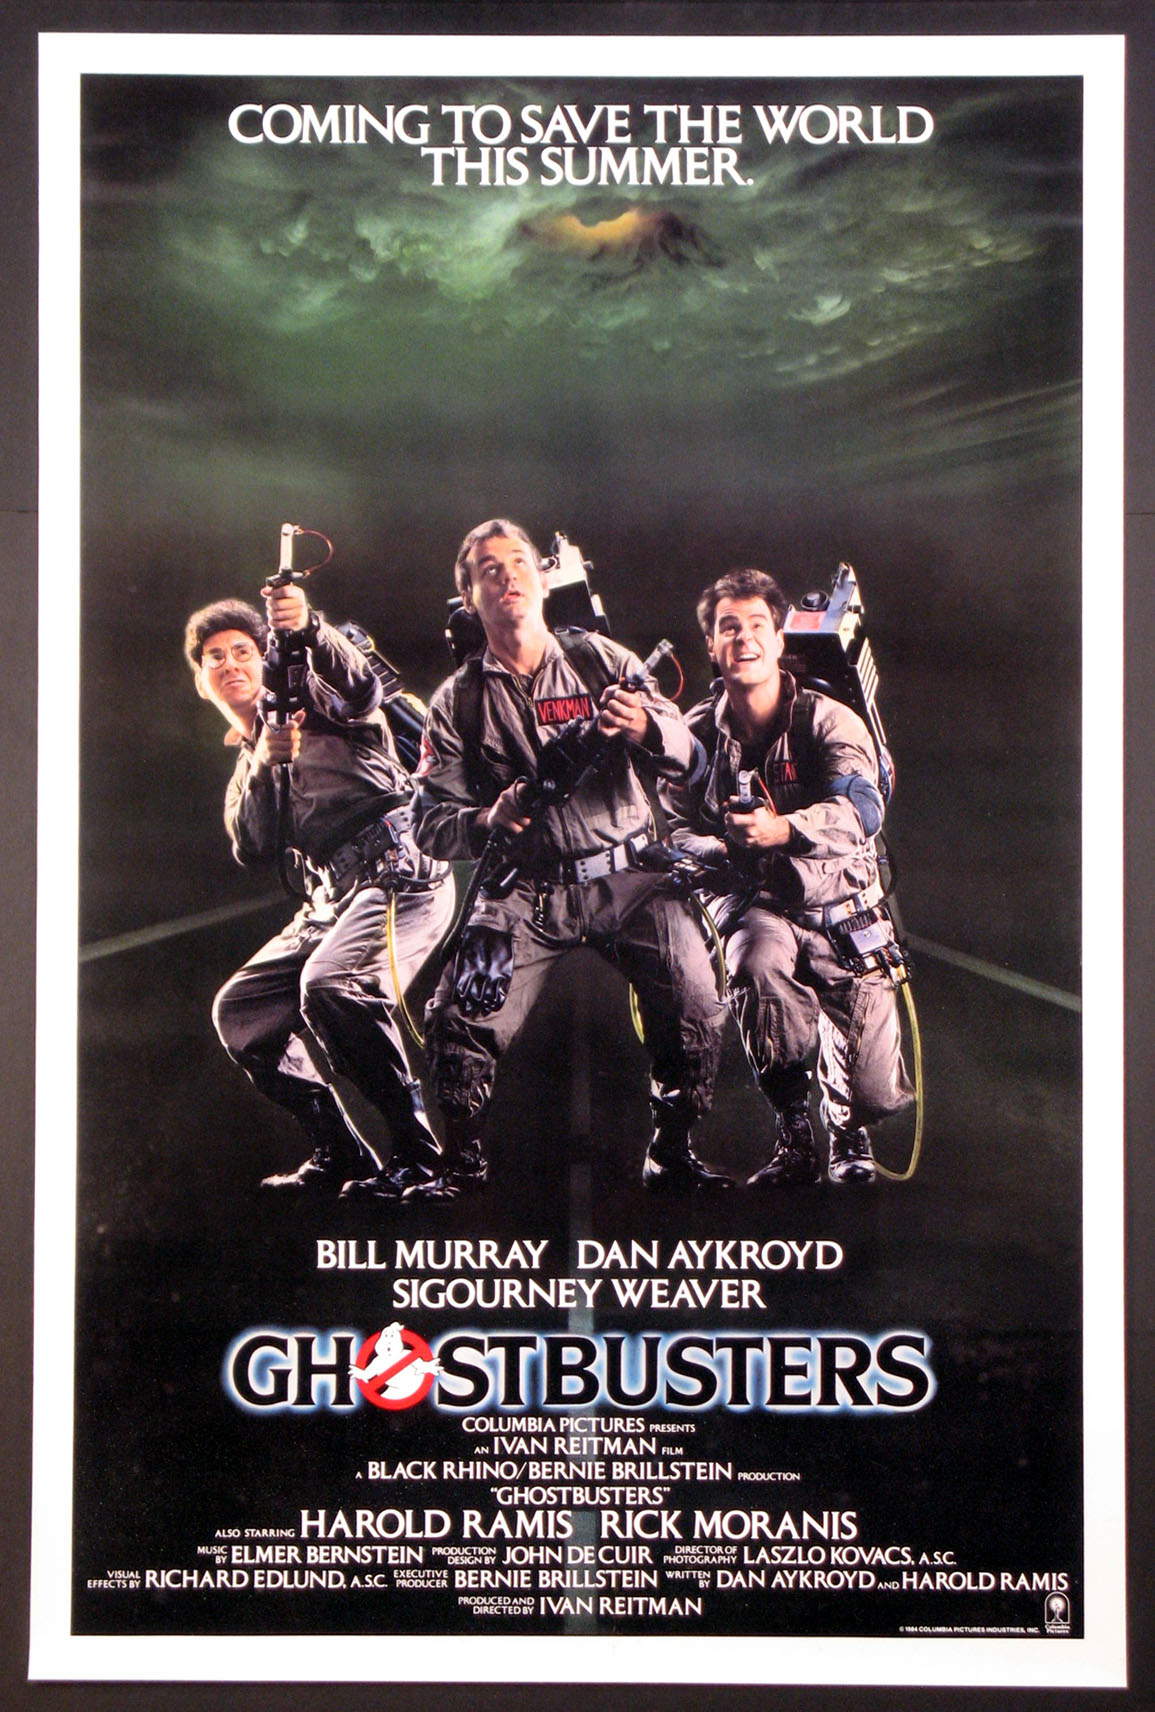 GHOSTBUSTERS (Ghost Busters) @ FilmPosters.com